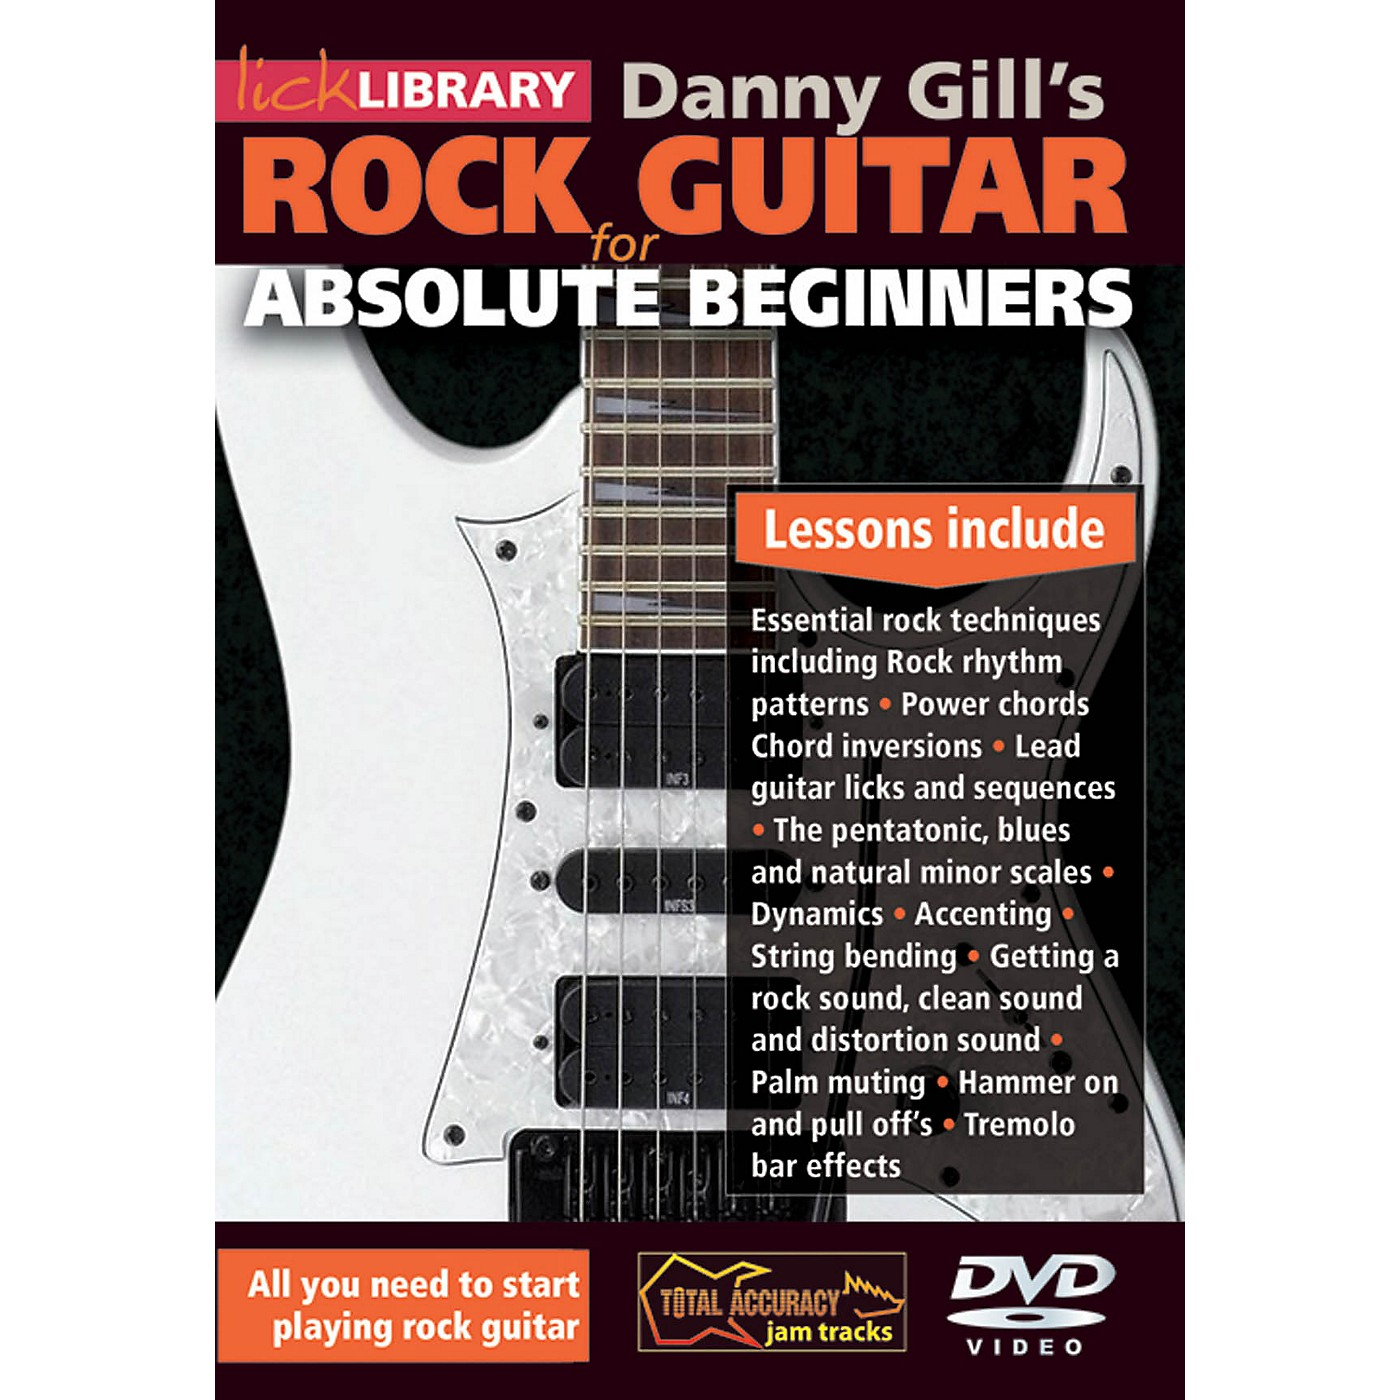 Licklibrary Rock Guitar for Absolute Beginners Lick Library Series DVD Written by Danny Gill thumbnail